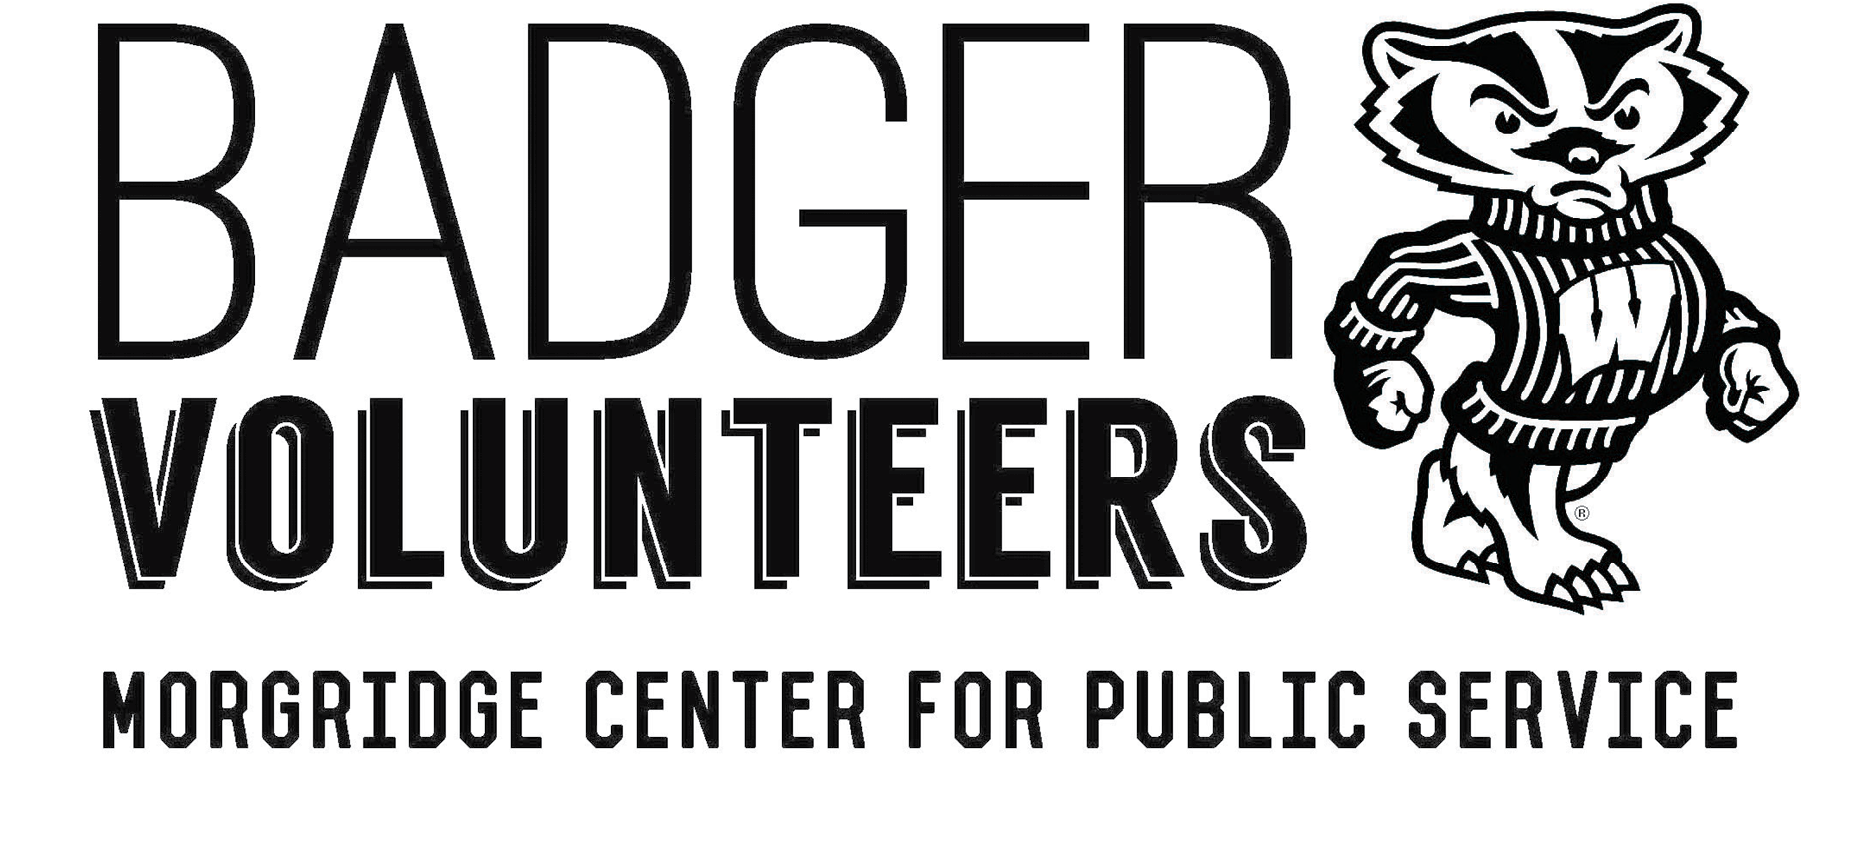 Badger Volunteers Logo